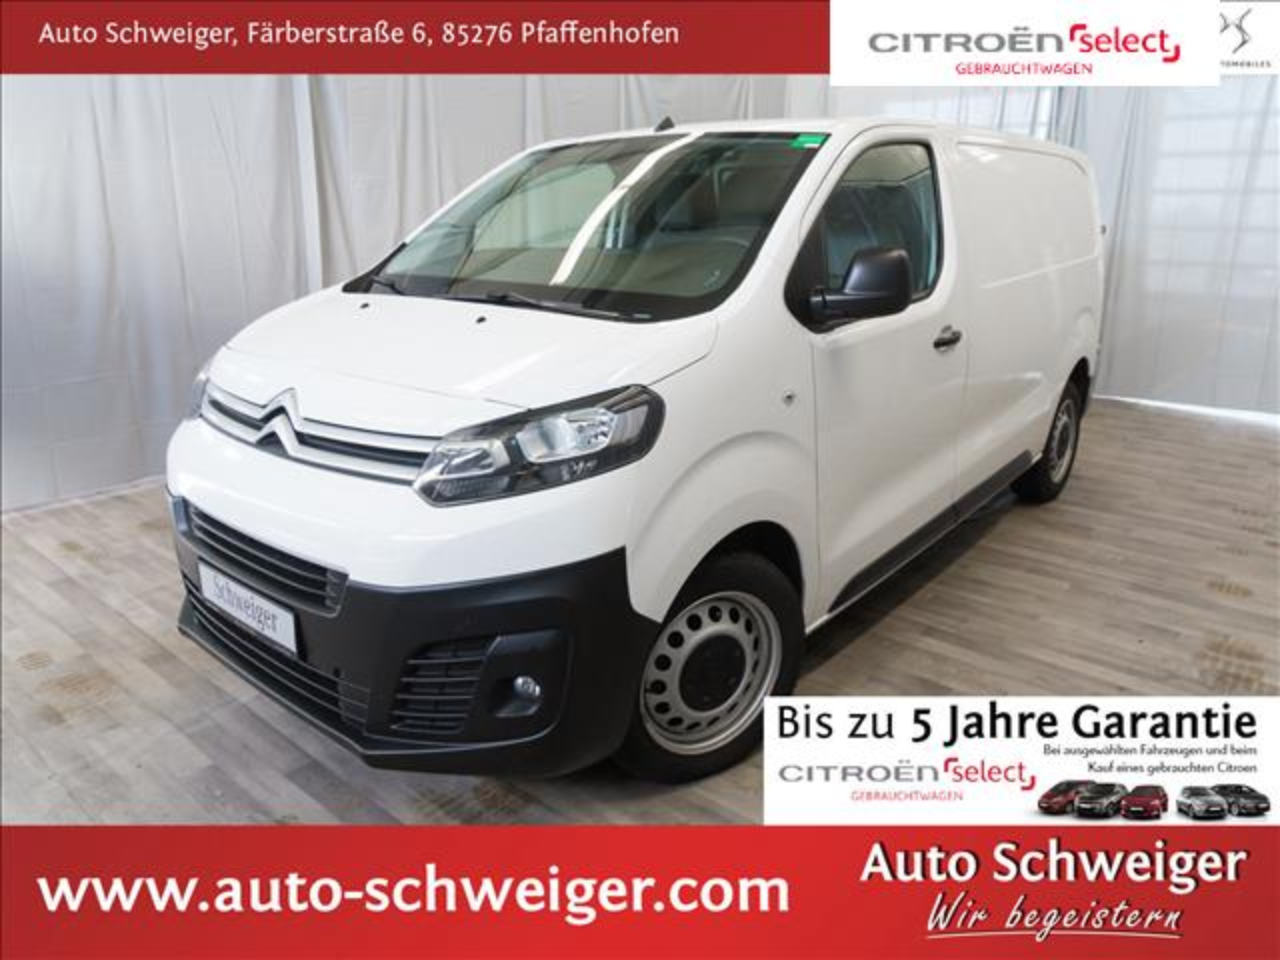 Citroën Jumpy KaWa Business M L2 Klima PTS hi. Radio DAB